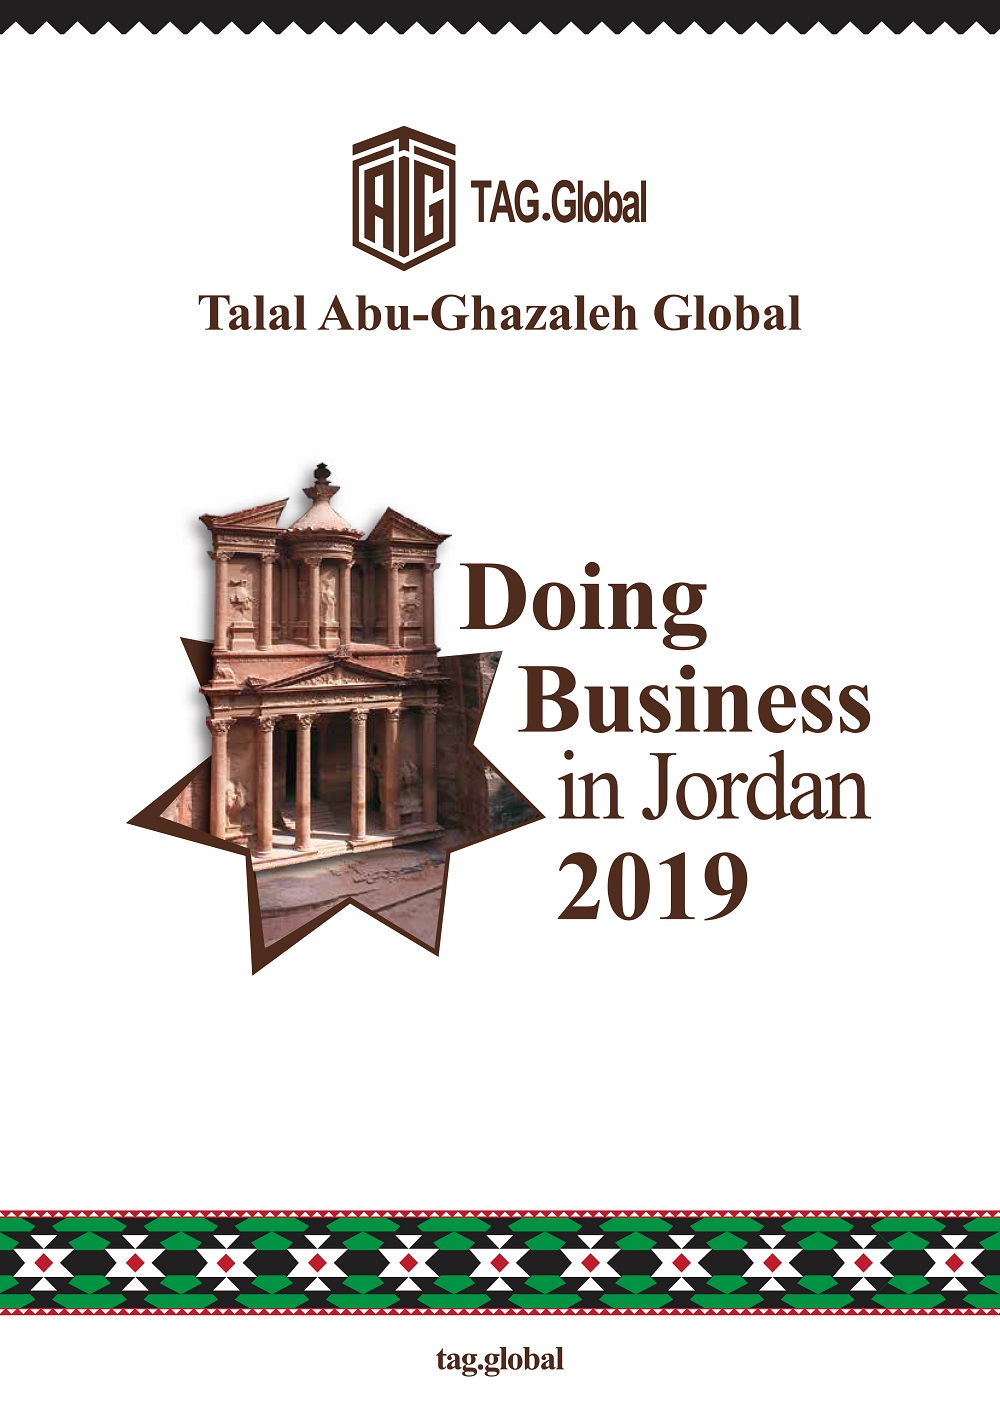 Abu-Ghazaleh Global Issues 'Doing Business in Jordan, A Comprehensive Guide 2019'